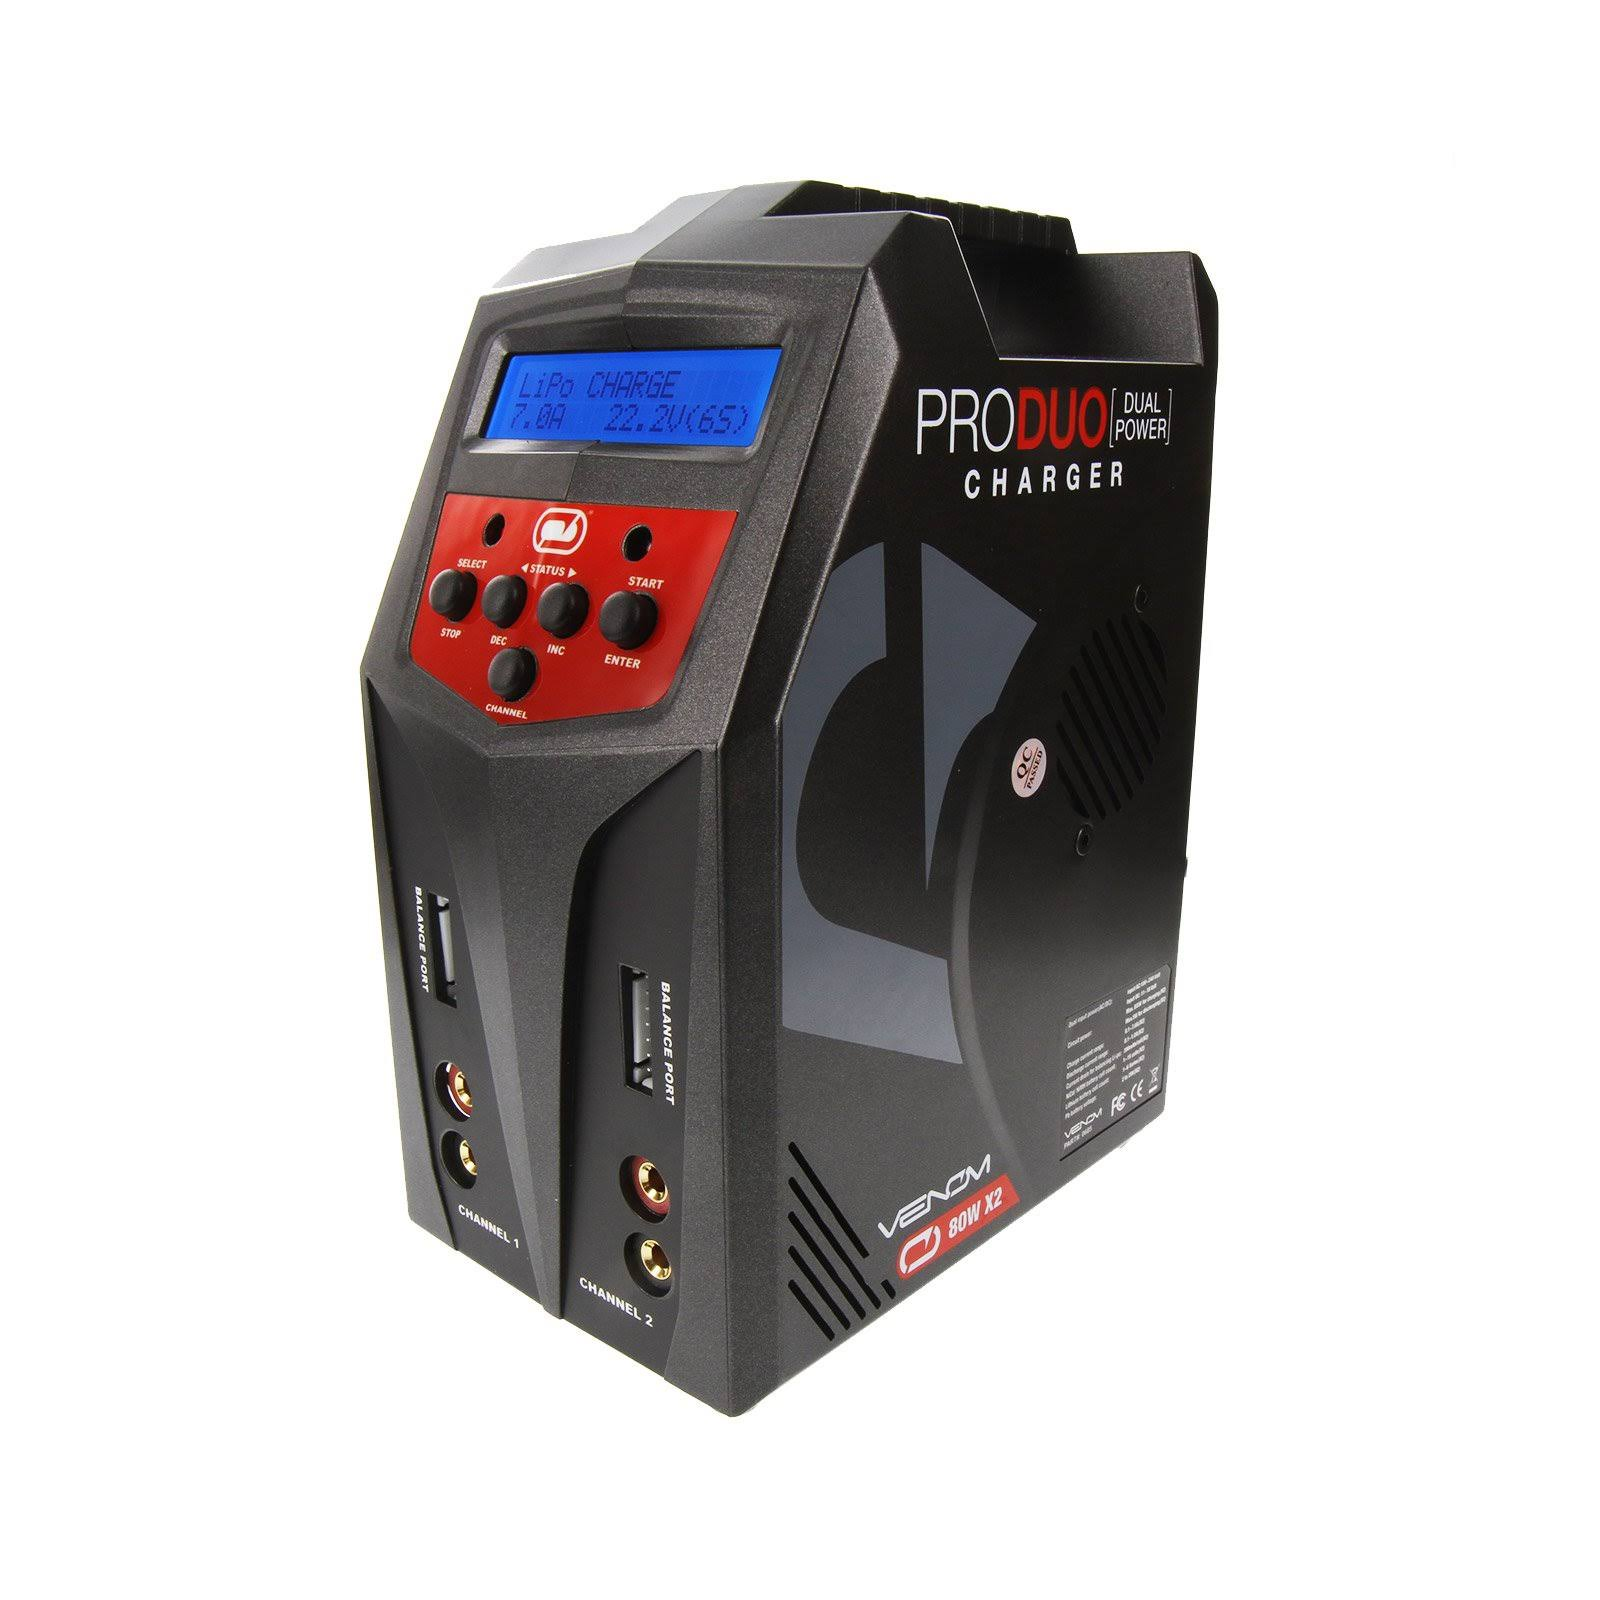 Venom Pro Duo Ac Dc Lipo Ni Mh Battery Charger - 160W